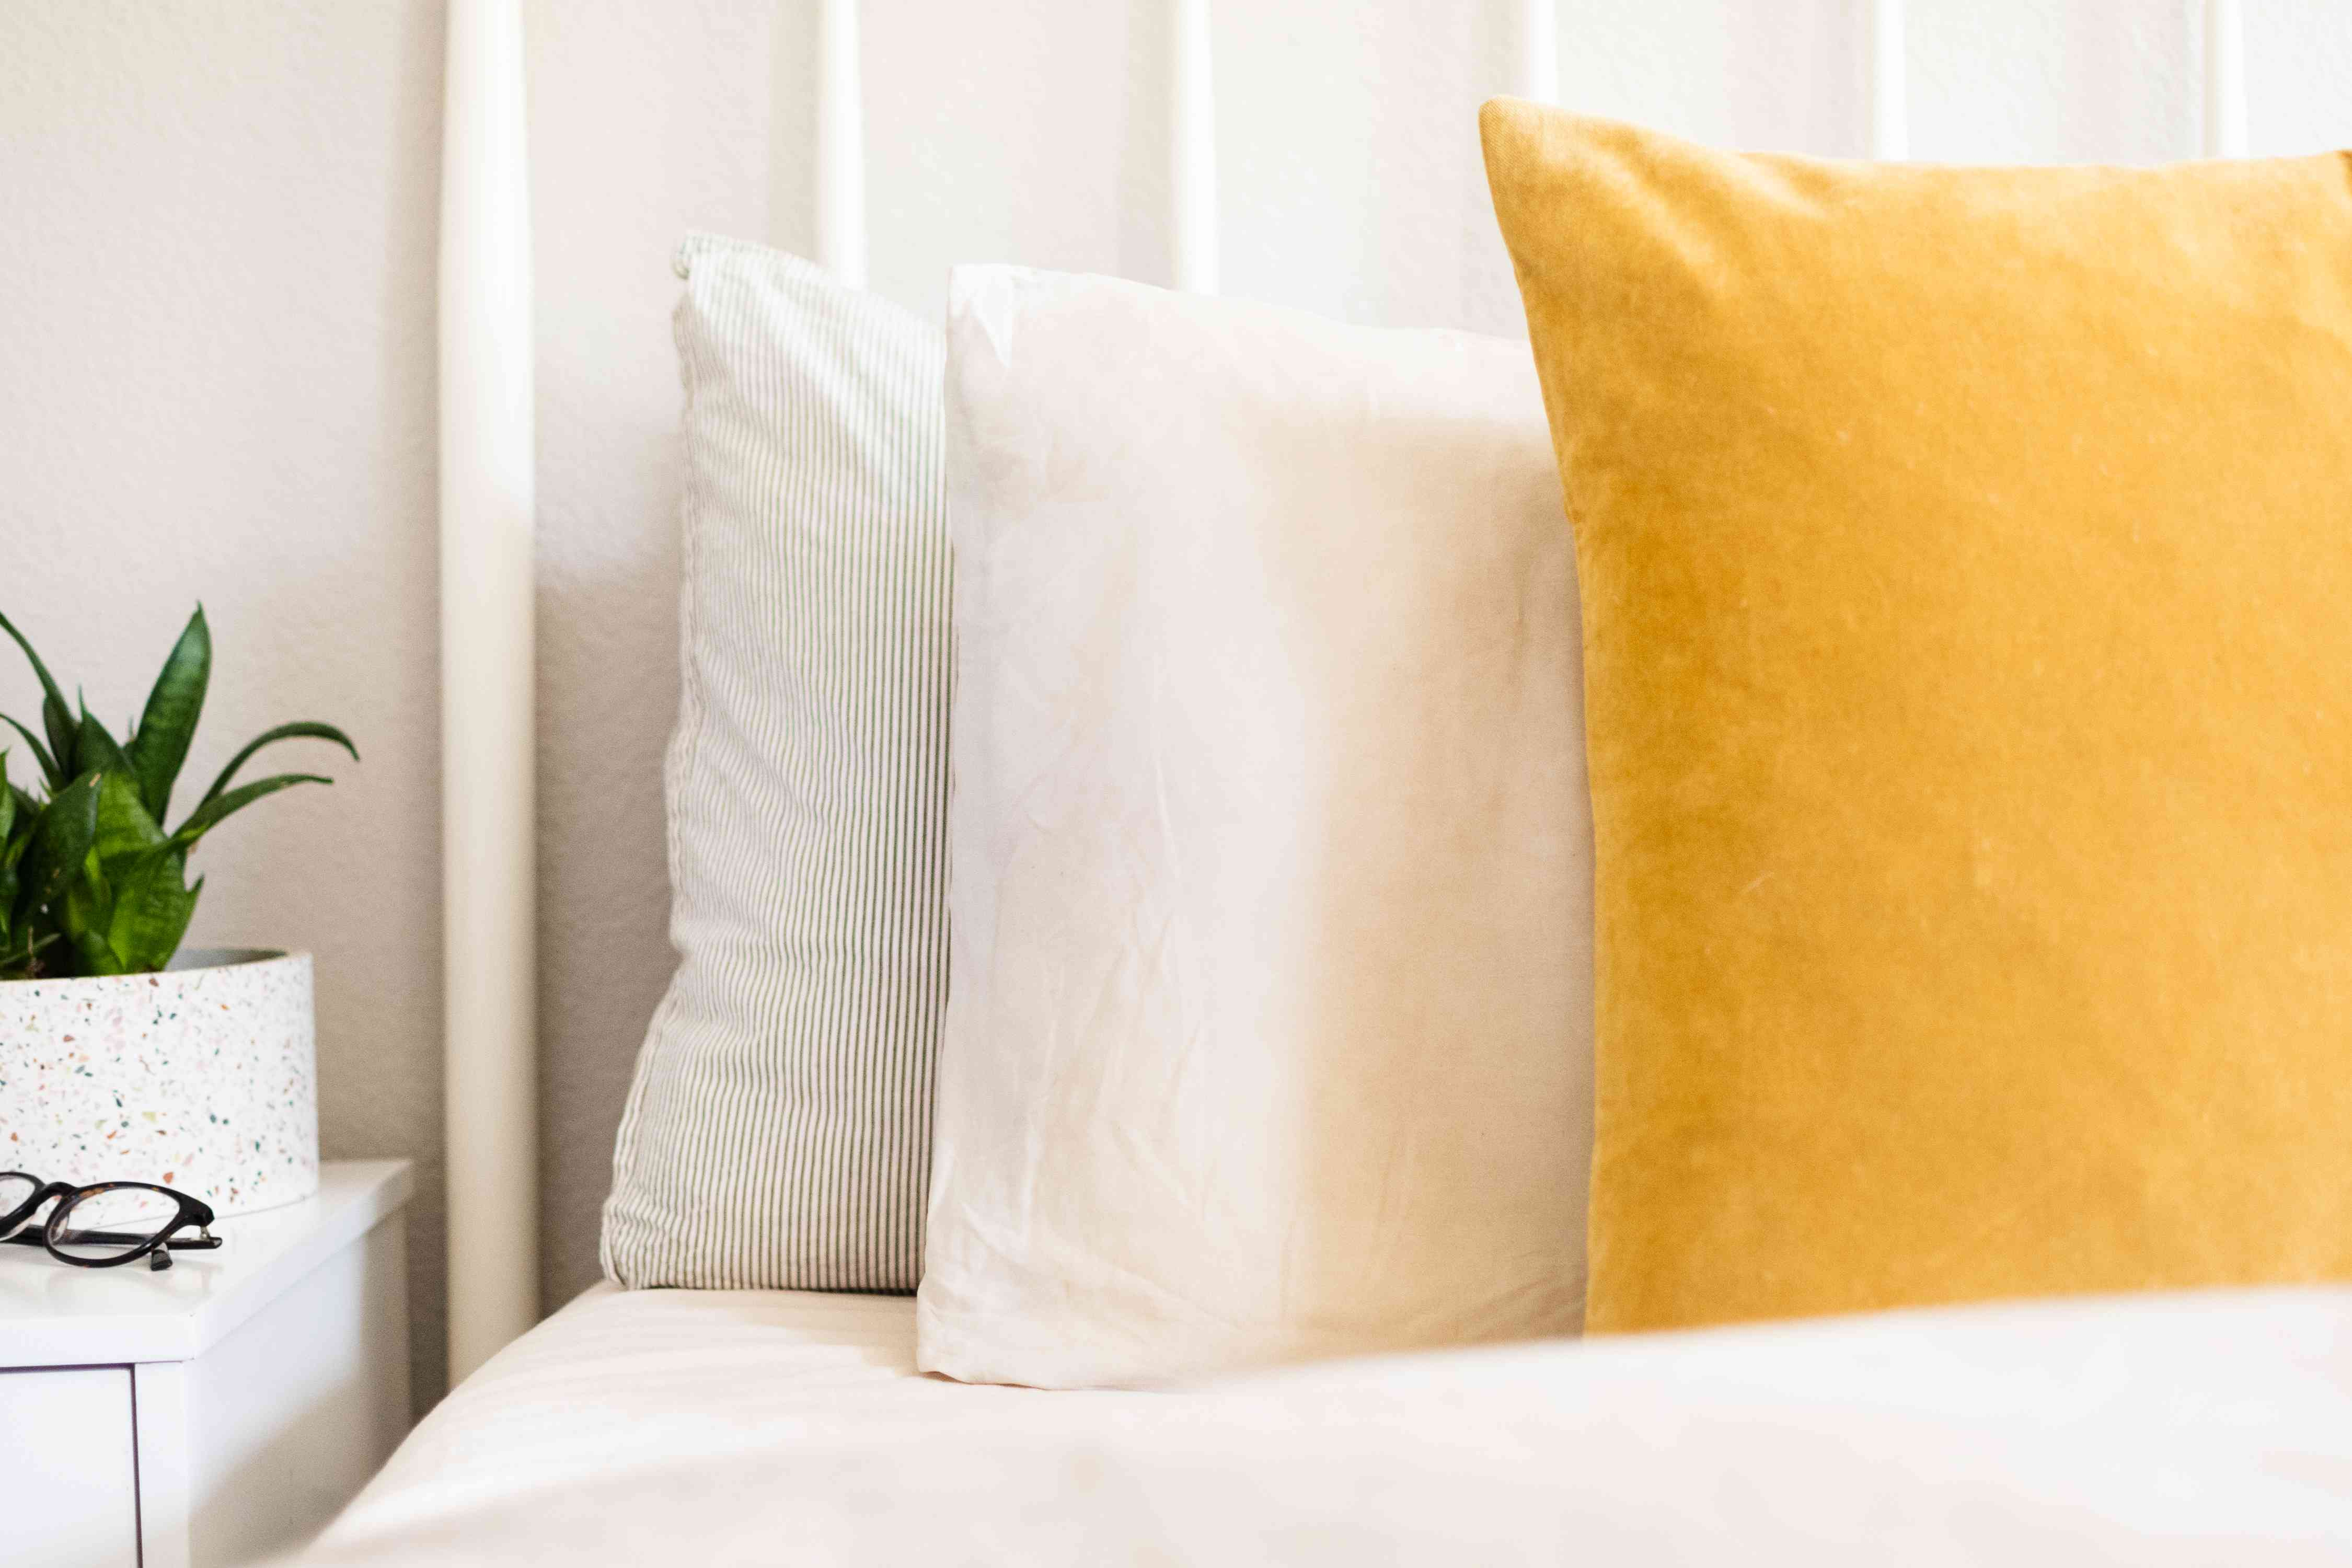 White and yellow pillows on bed closeup